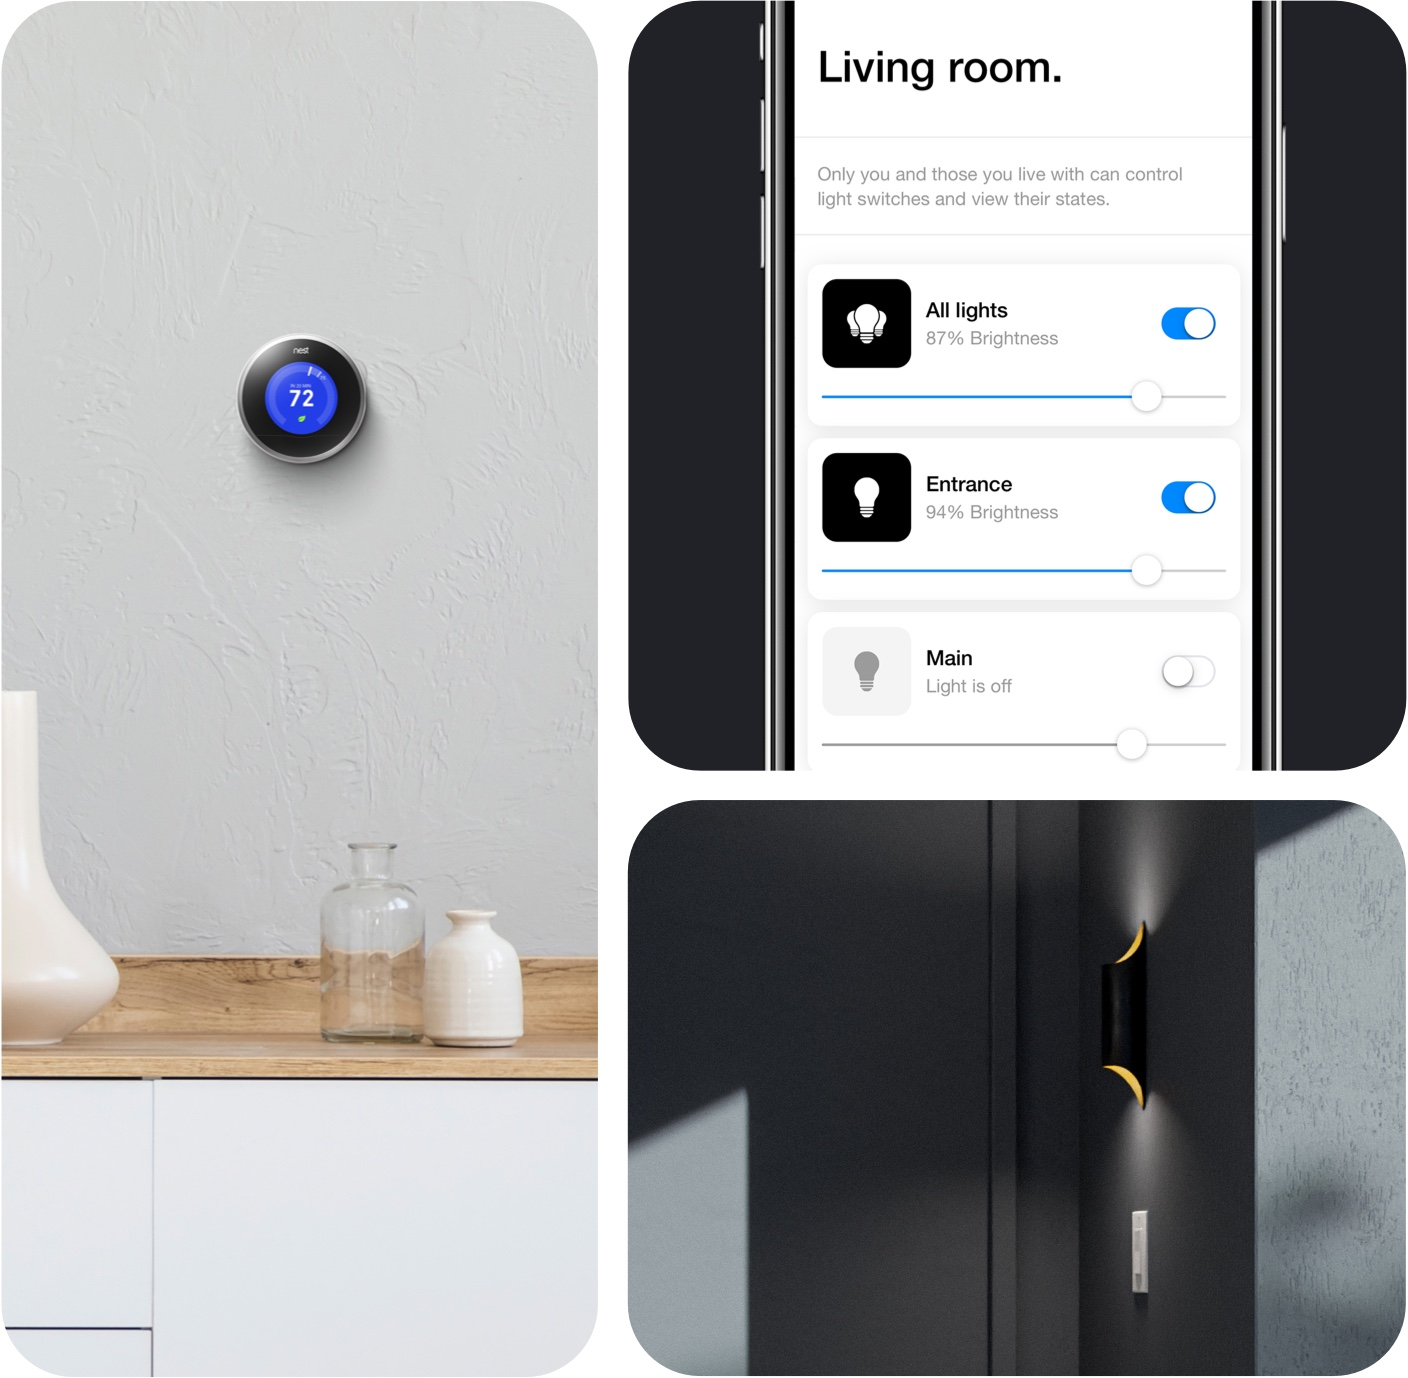 A collage showing a smart light, Google Nest, and smart home control via Latch App.